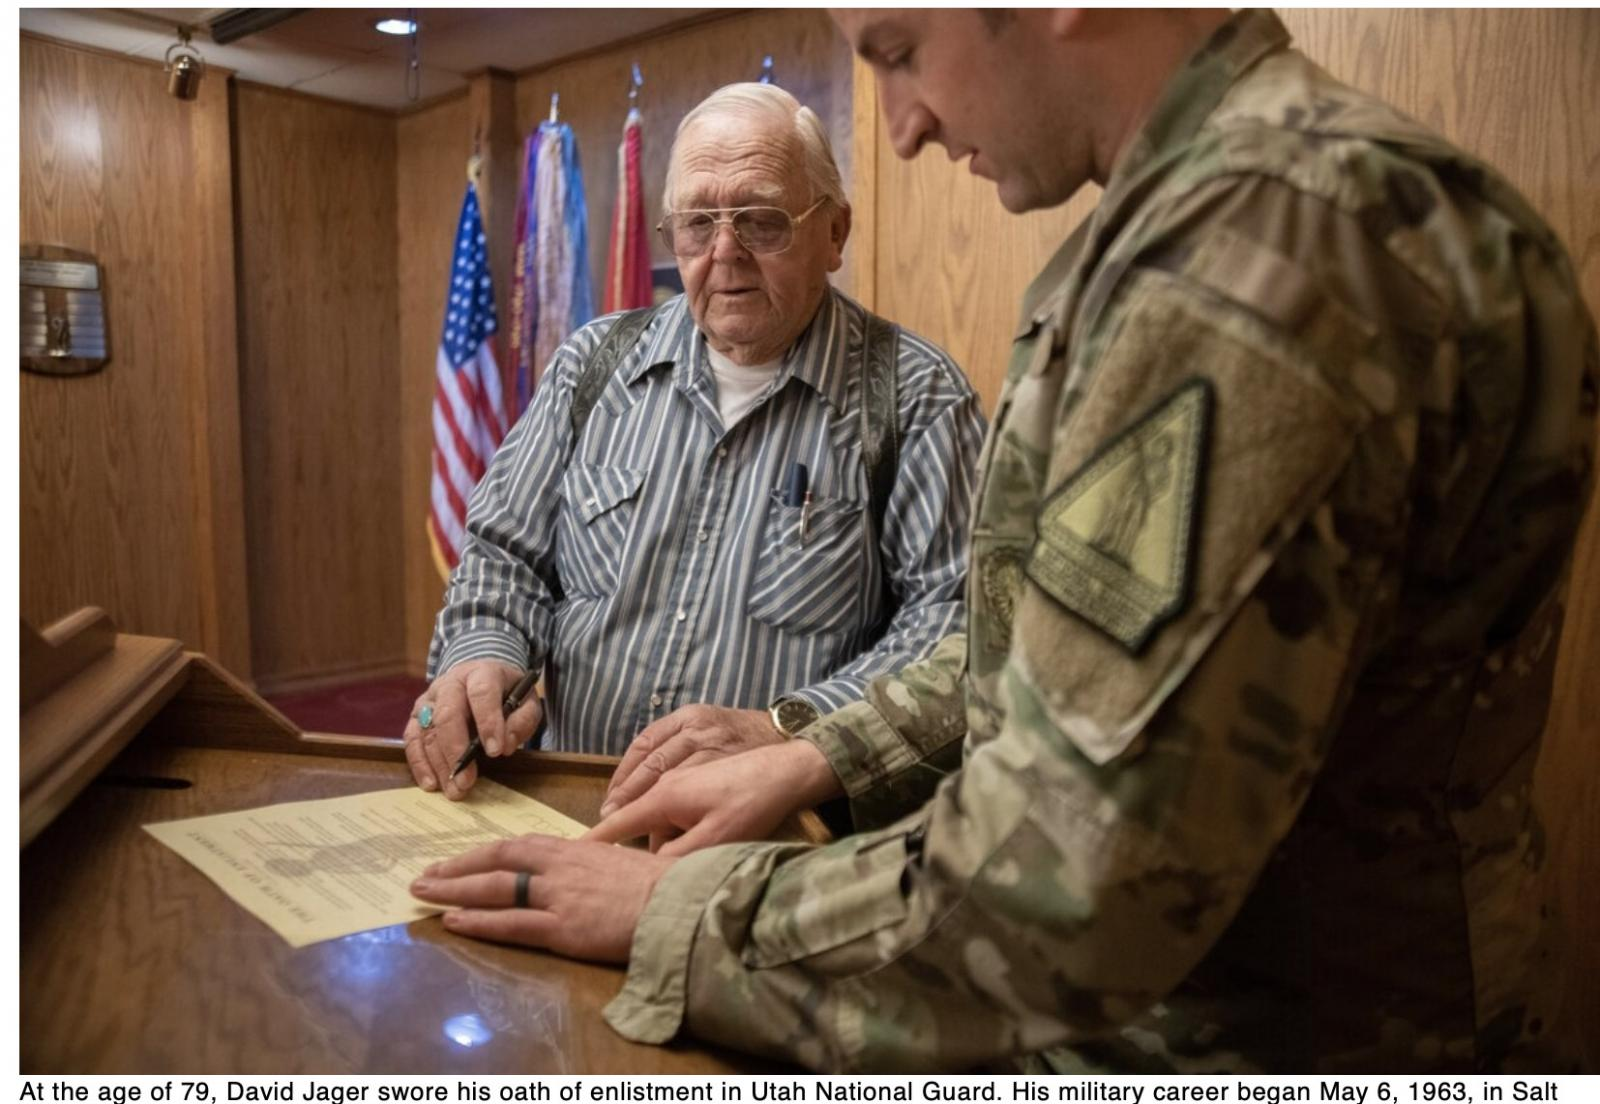 Your Army This 79-year-old Utah man just swore his Army enlistment oath